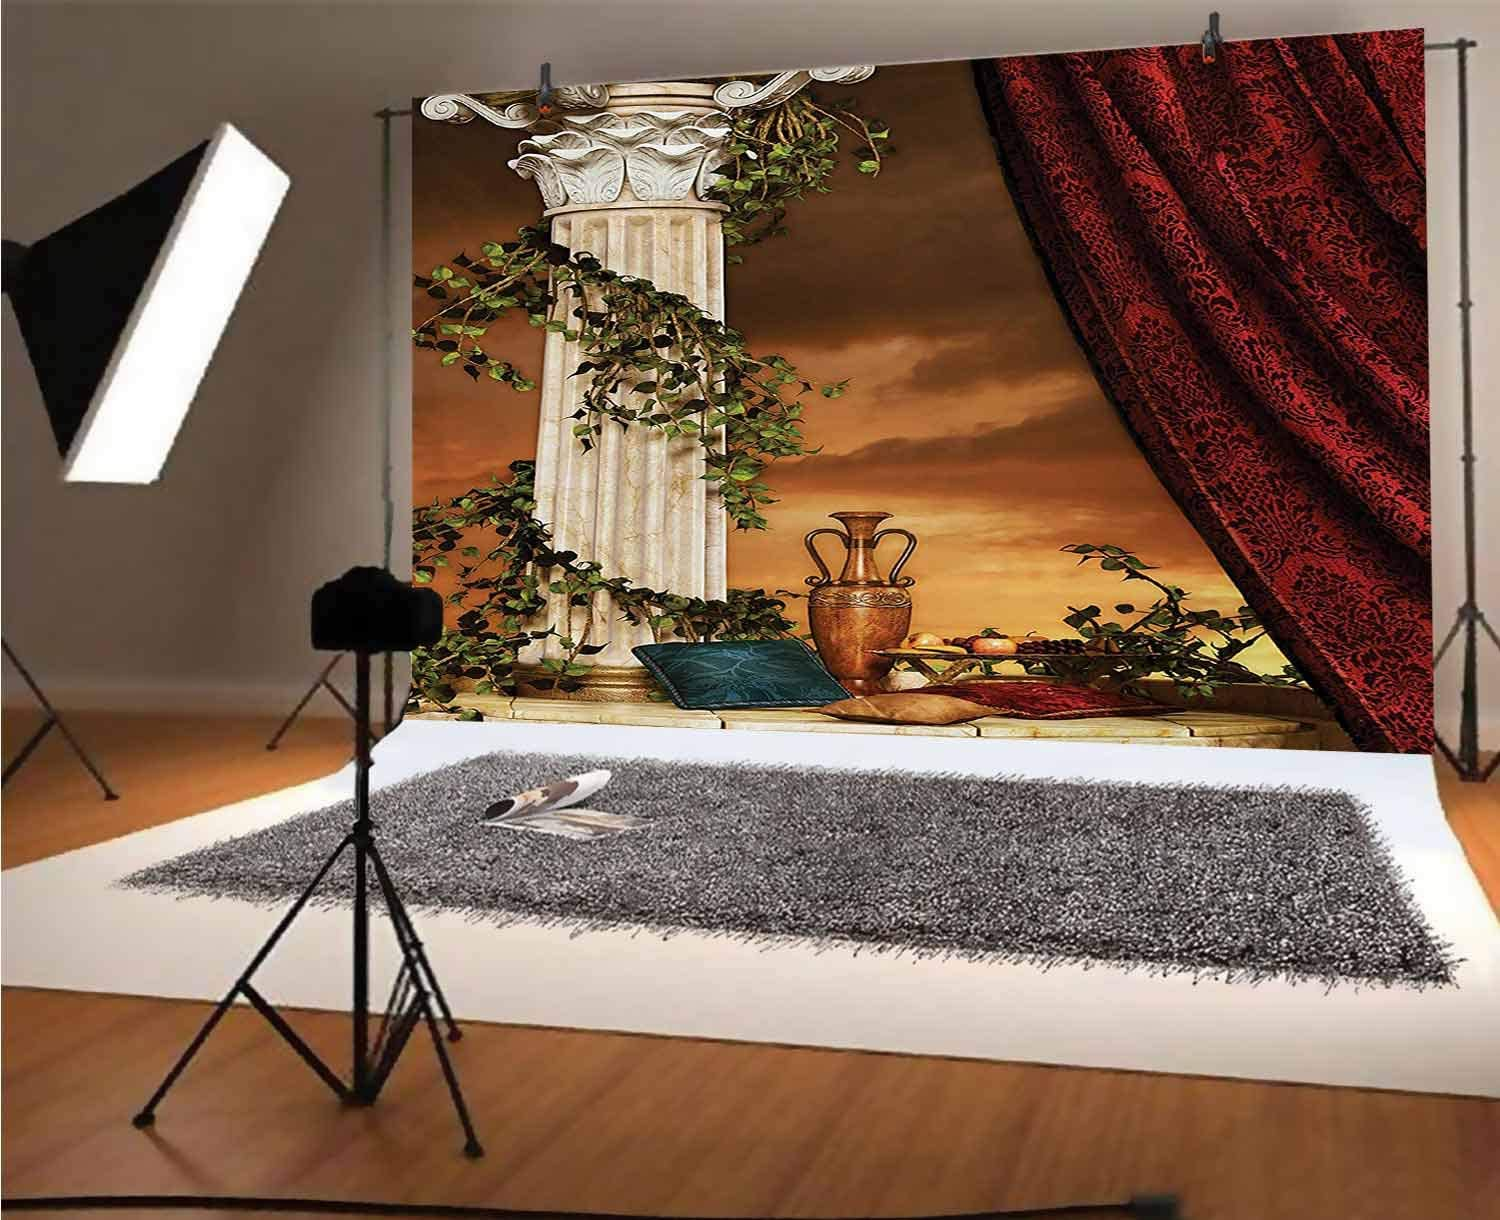 Gothic 12x10 FT Vinyl Photo Backdrops,Greek Style Scene Climber Pillow Fruits Vine and Red Curtain Ancient Figure Sunset Background for Child Baby Shower Photo Studio Prop Photobooth Photoshoot